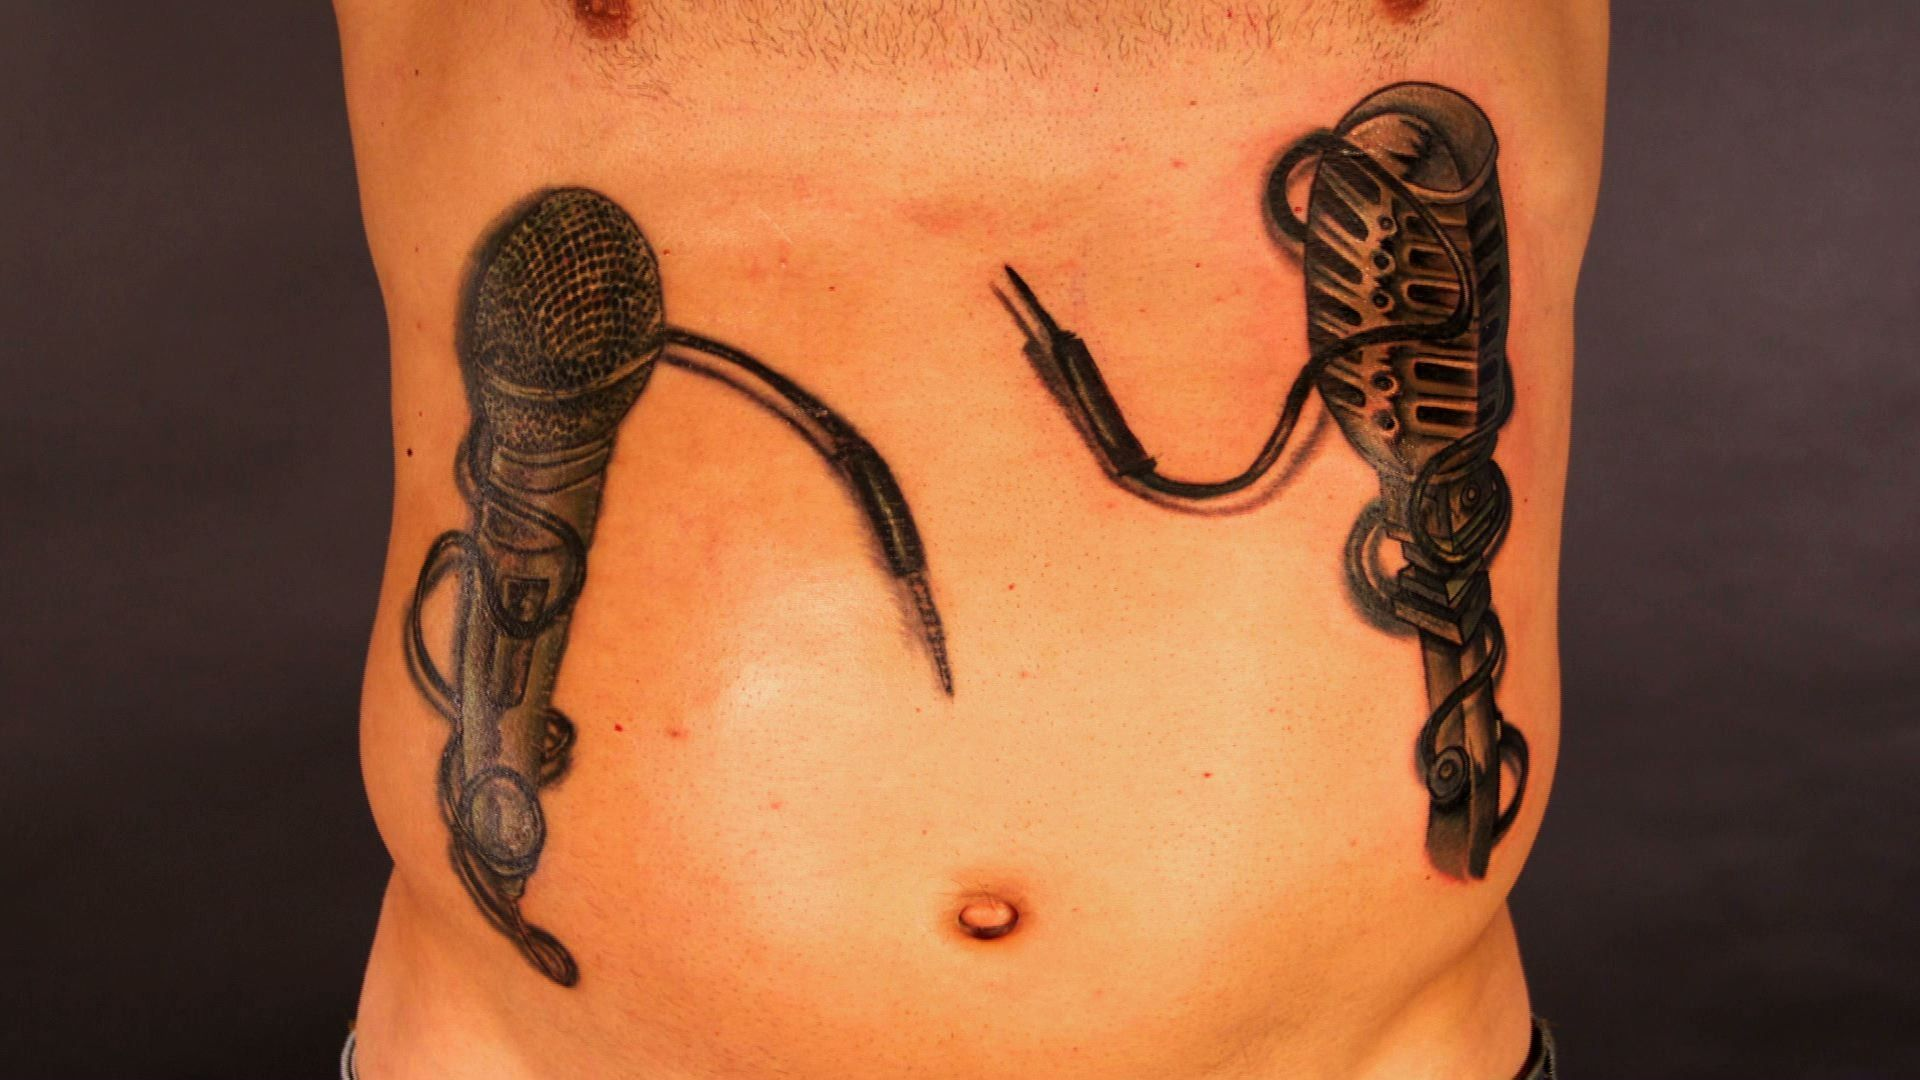 Big gus tattoo nightmares google search after skin art for Is tattoo nightmares still on